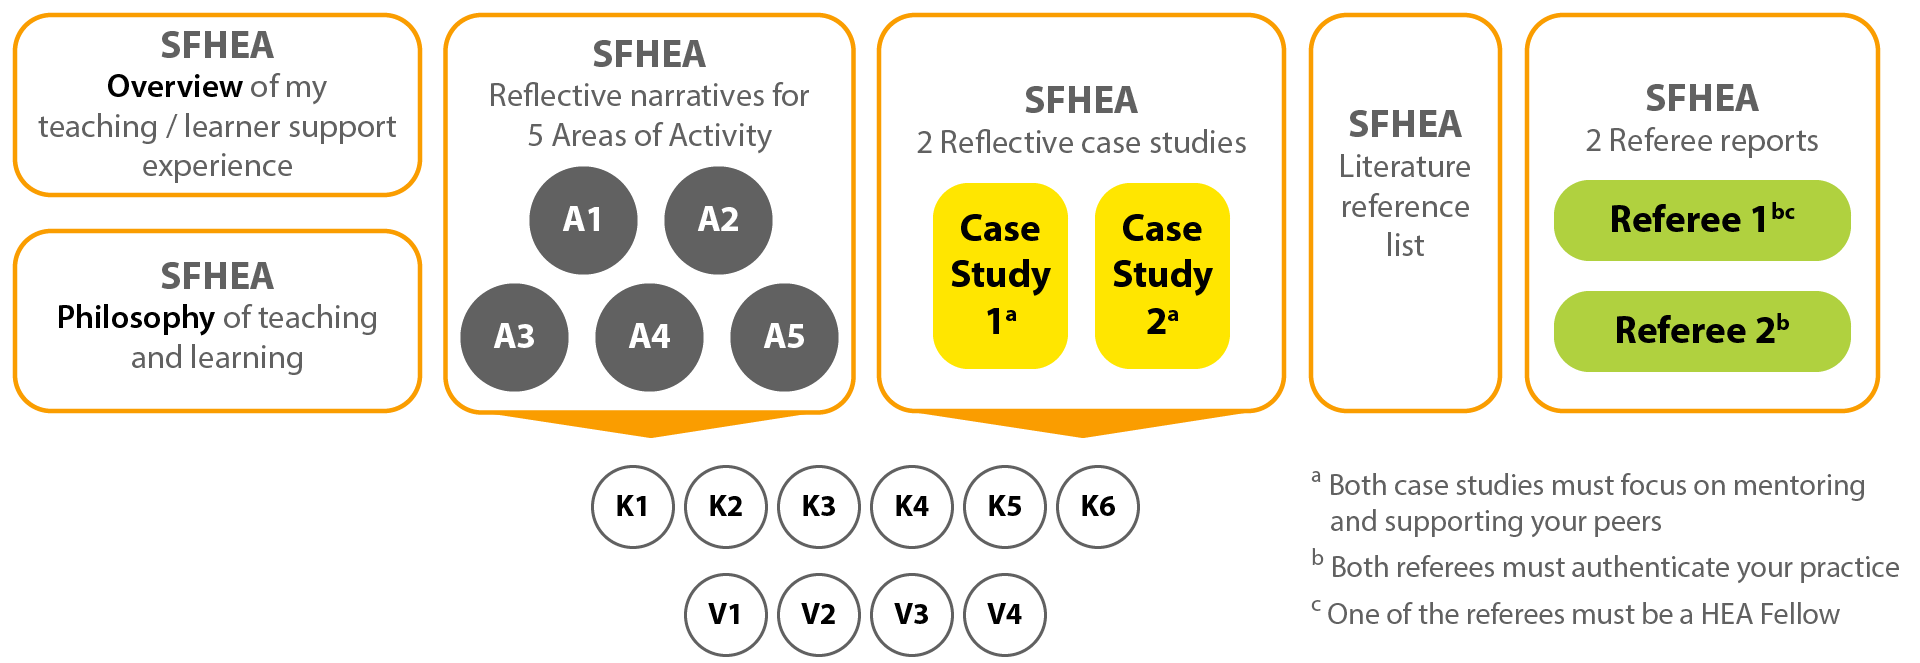 Checklist for SFHEA. Overview of my teaching/learner support experience. Philosophy of teaching and learning. Reflective narratives for 5 Areas of Activity (A1, A2, A3, A4 and A5): including K1, K2, K3, K4, K5, K6, V1, V2, V3 and V4. 2 reflective case studies (both case studies must focus on mentoring and supporting your peers). Literature reference list. 2 referee reports (both referees must authenticate your practice. One of the referees must be a HEA Fellow).